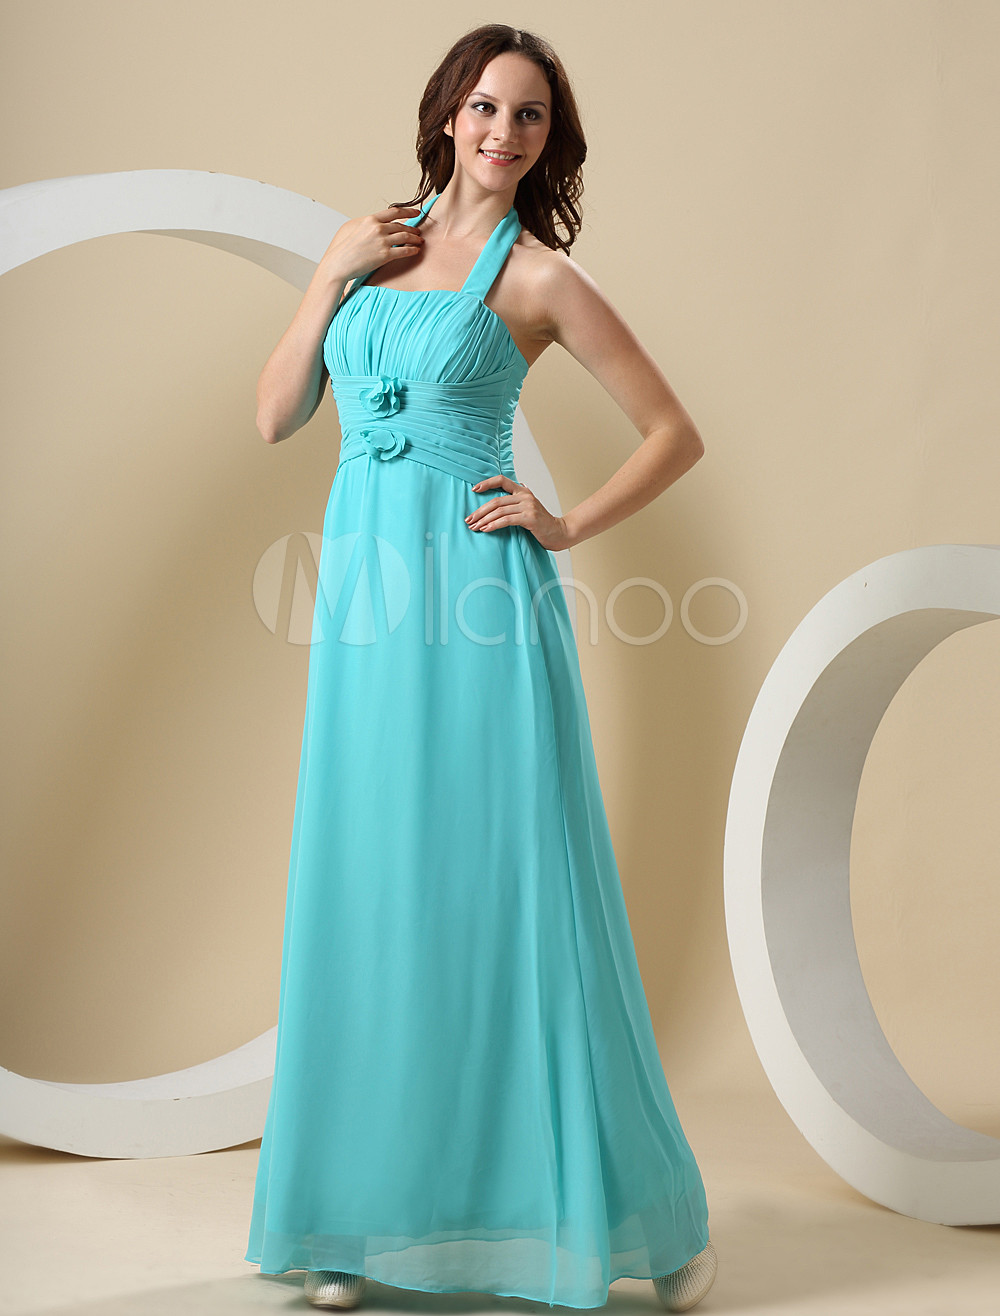 Fresh Hunter Green Chiffon Floor Length Bridesmaid Dress